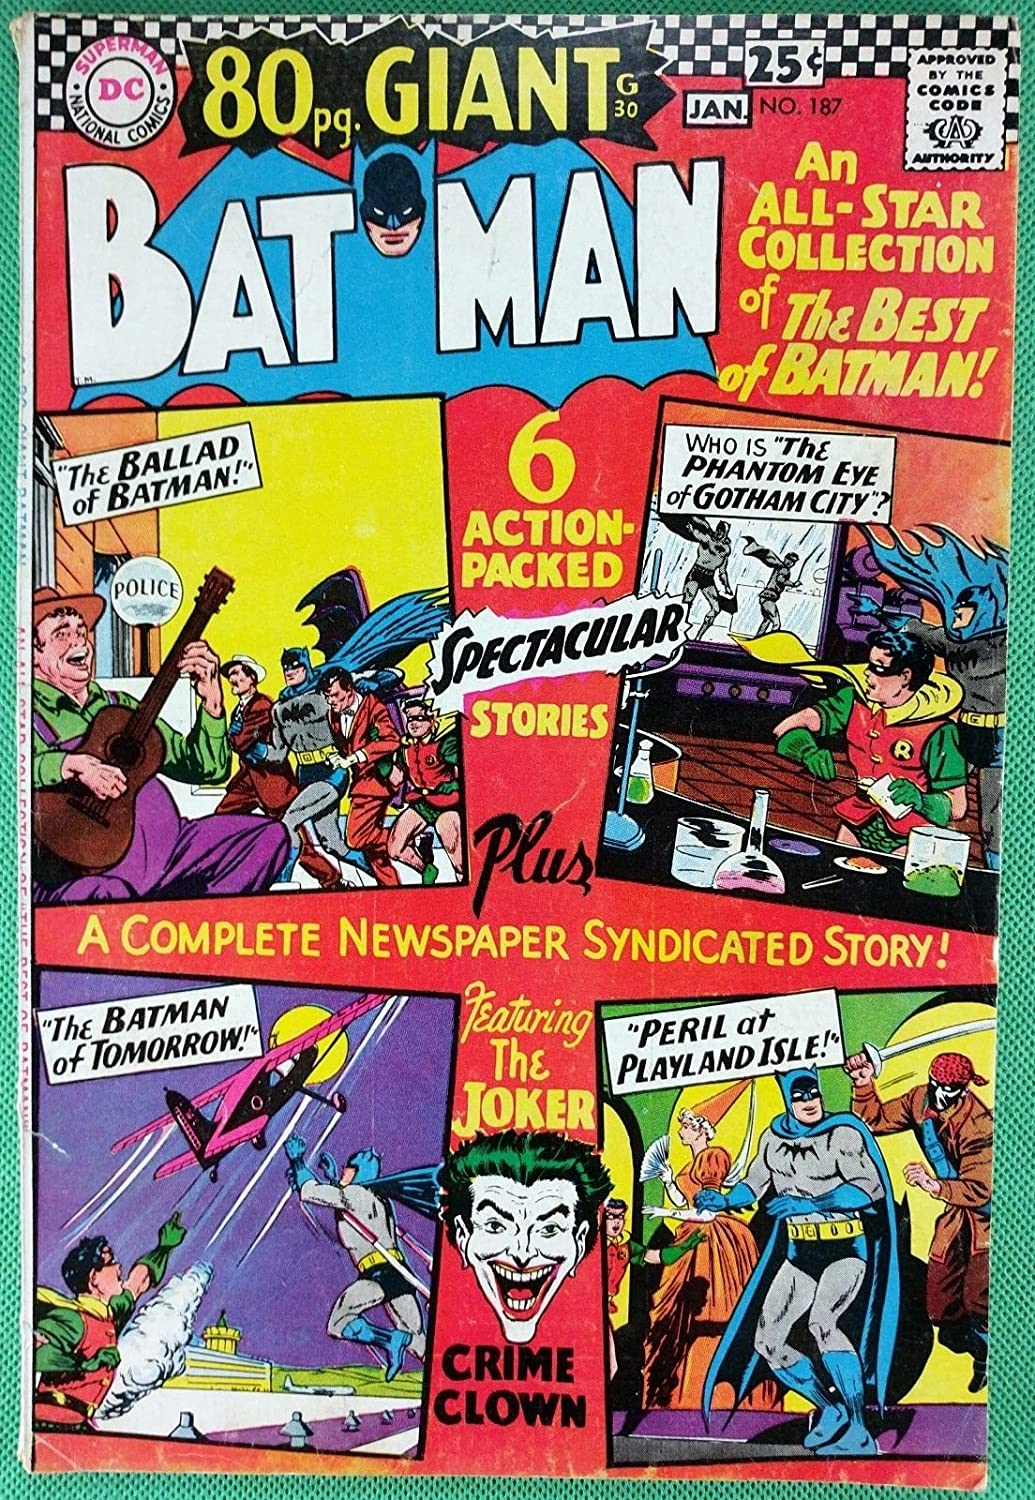 6b56961cbb98 Amazon.com  BATMAN (1940)  187 FN (6.0) Joker cover and story 80 page  giant  Entertainment Collectibles